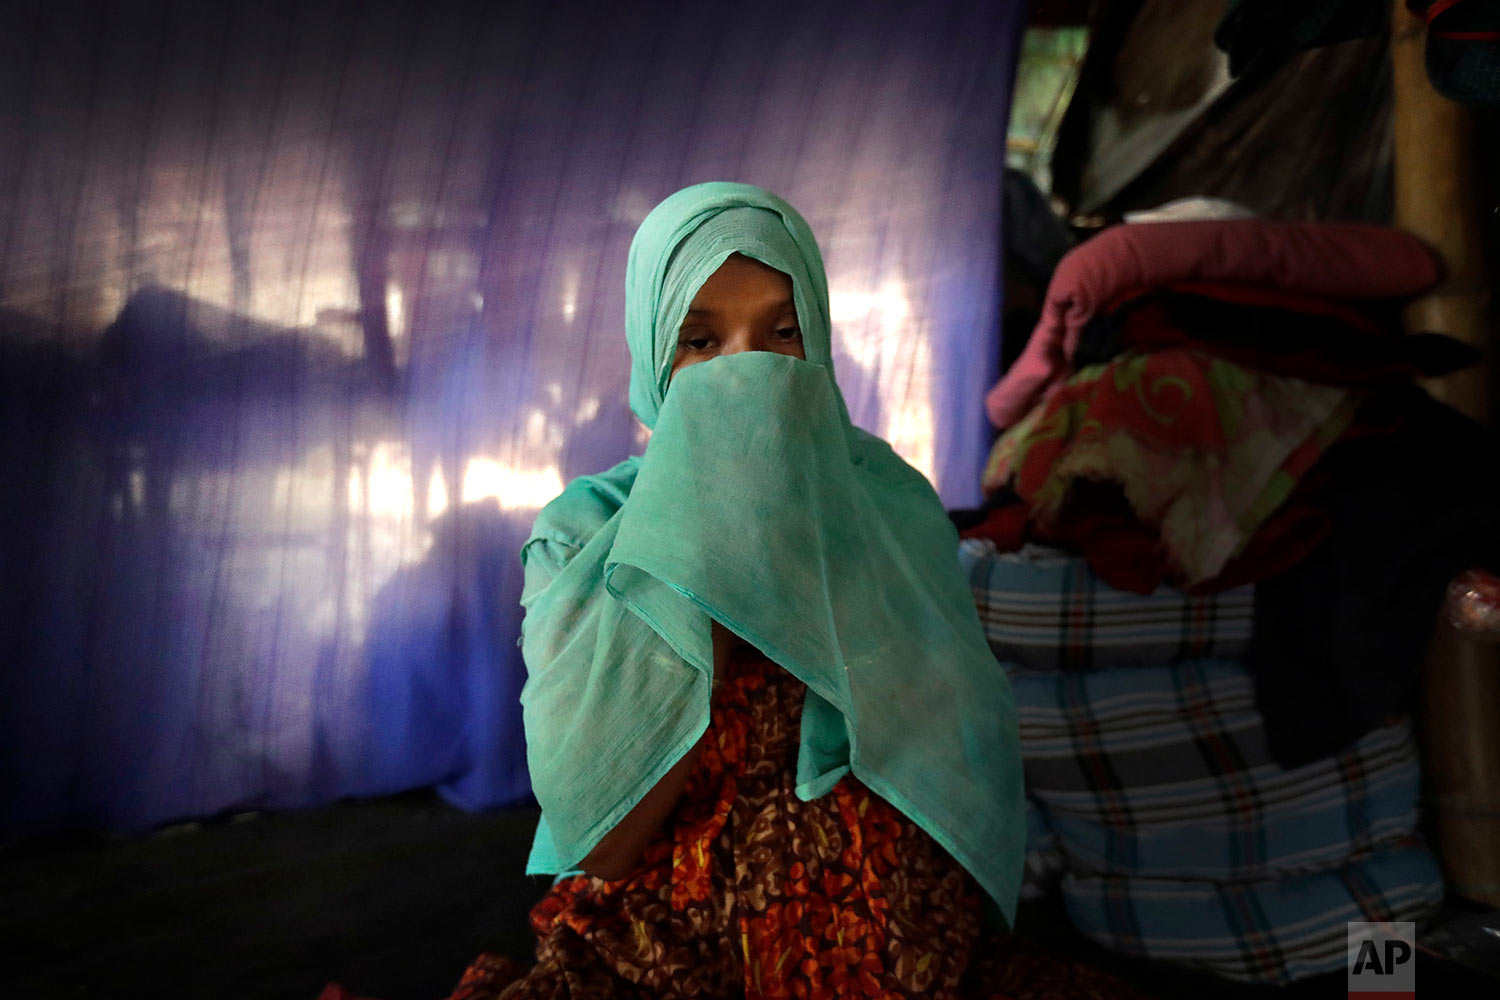 In this Wednesday, Nov. 22, 2017, photo, F, 22, pregnant, prays in her tent in Kutupalong refugee camp in Bangladesh. (AP Photo/Wong Maye-E)